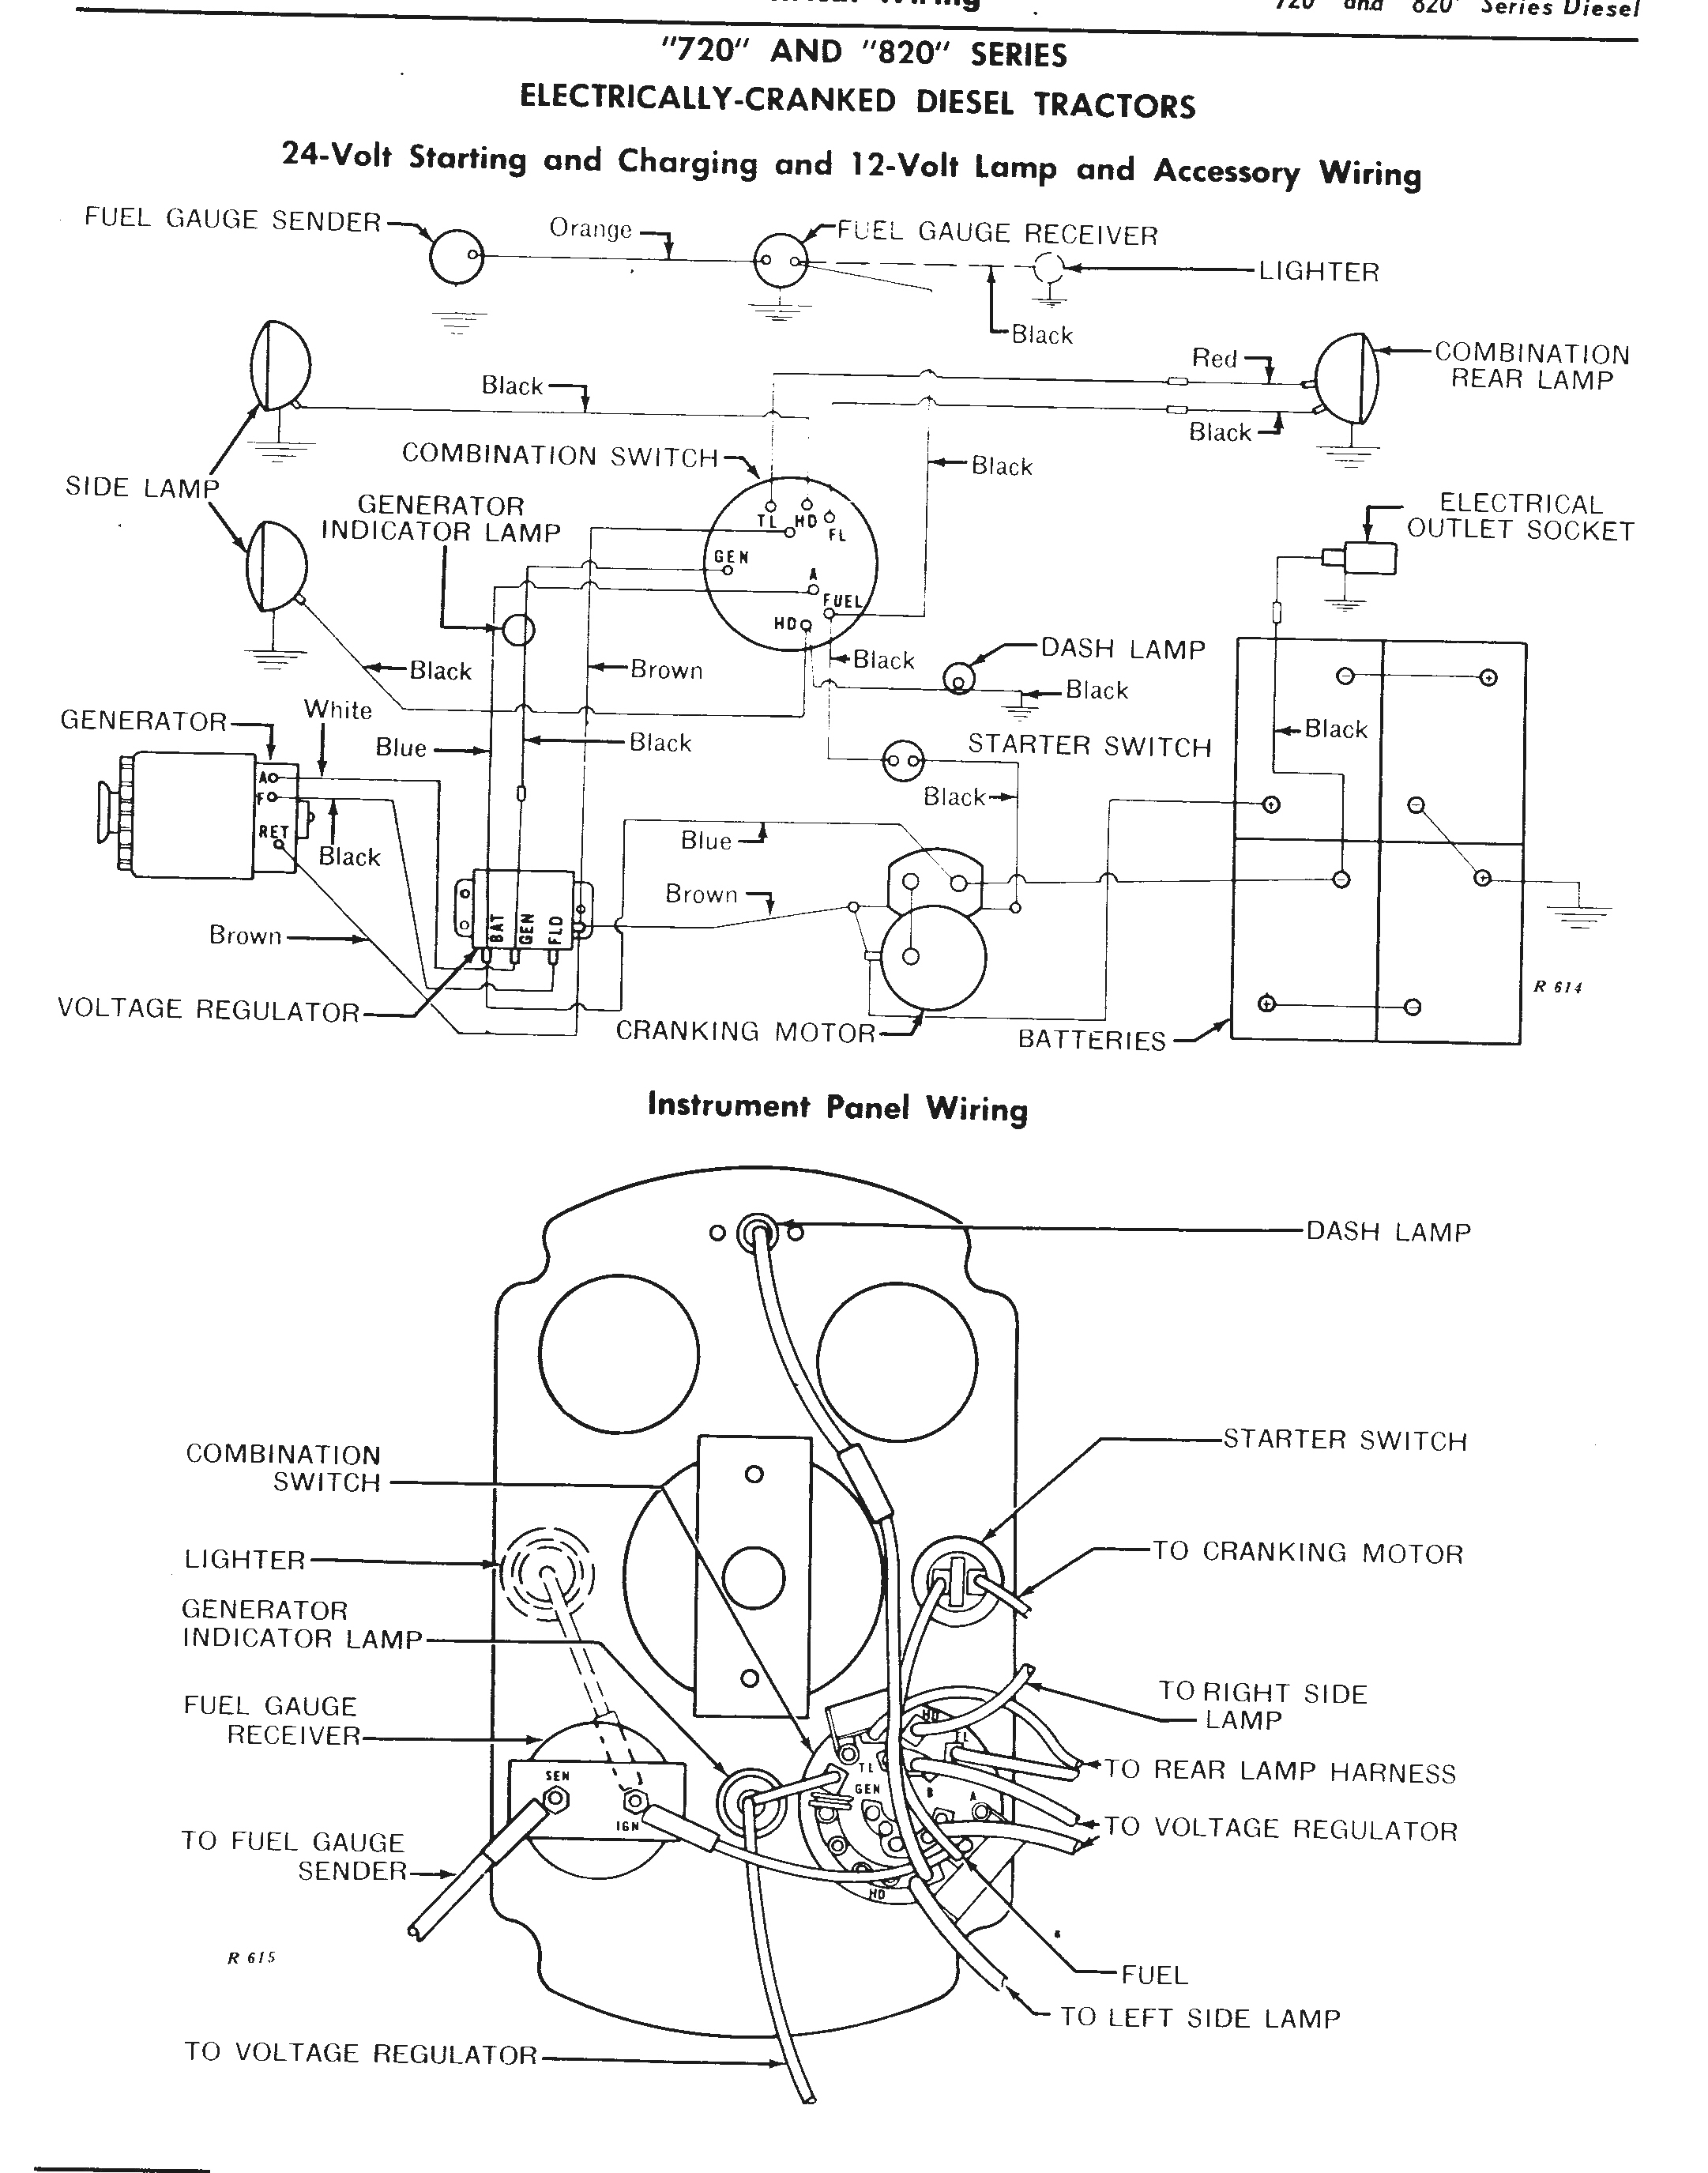 Wiring Diagram For A John Deere 214 Ignition Switch